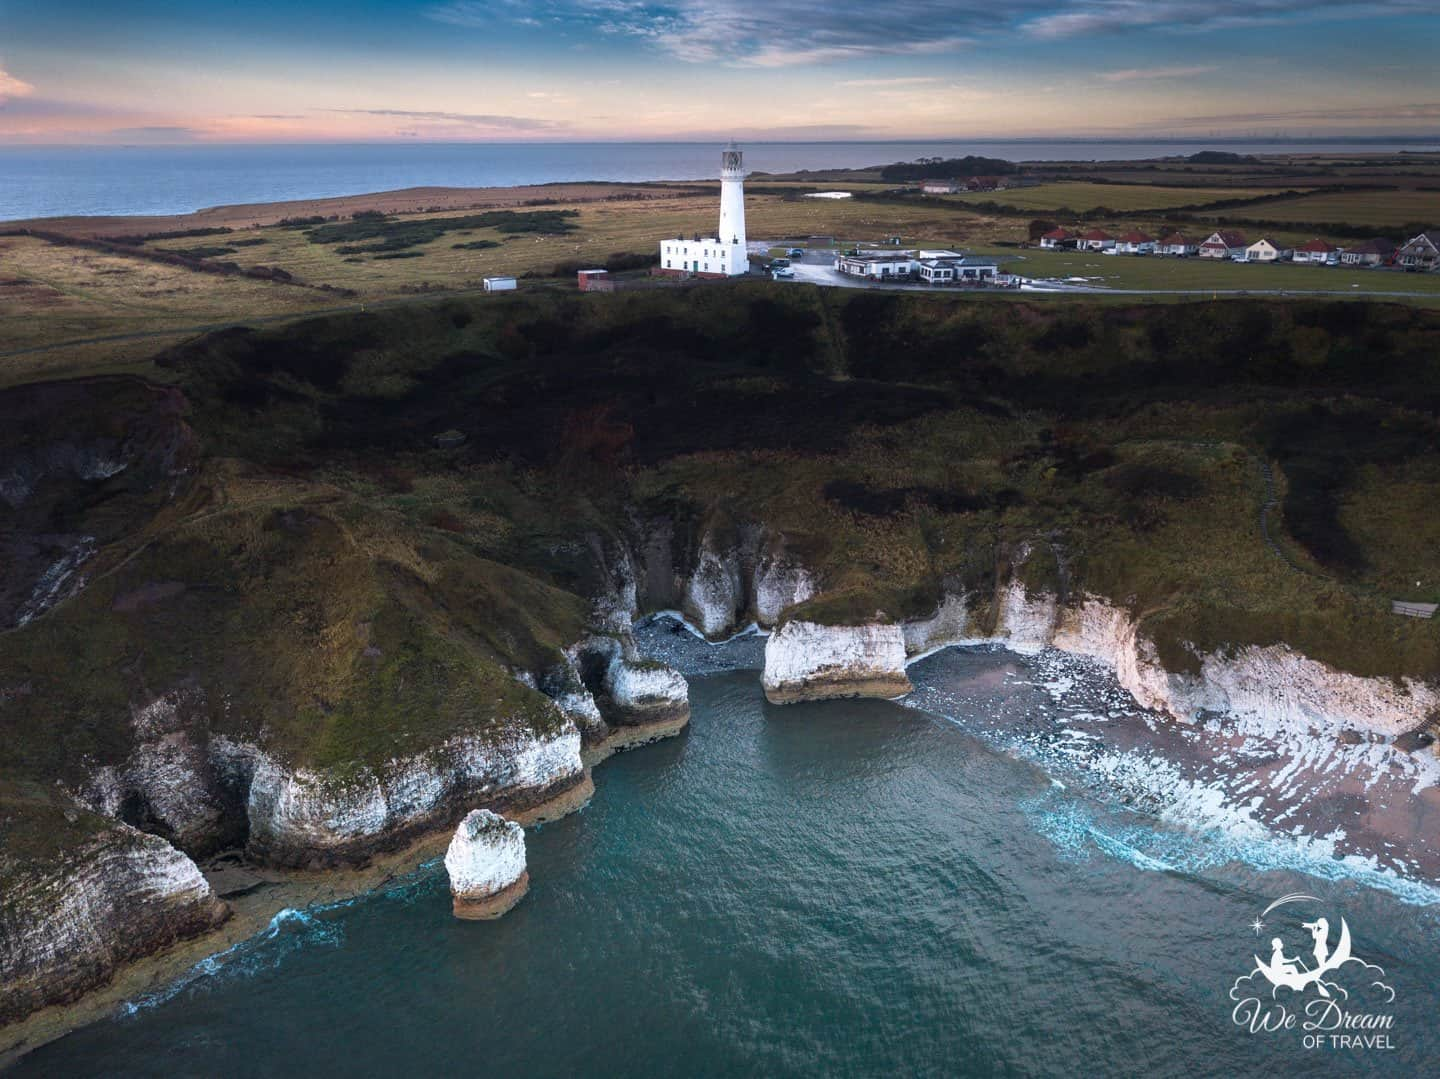 Drone photography provides a new perspective on the incredible scenery of Flamborough.